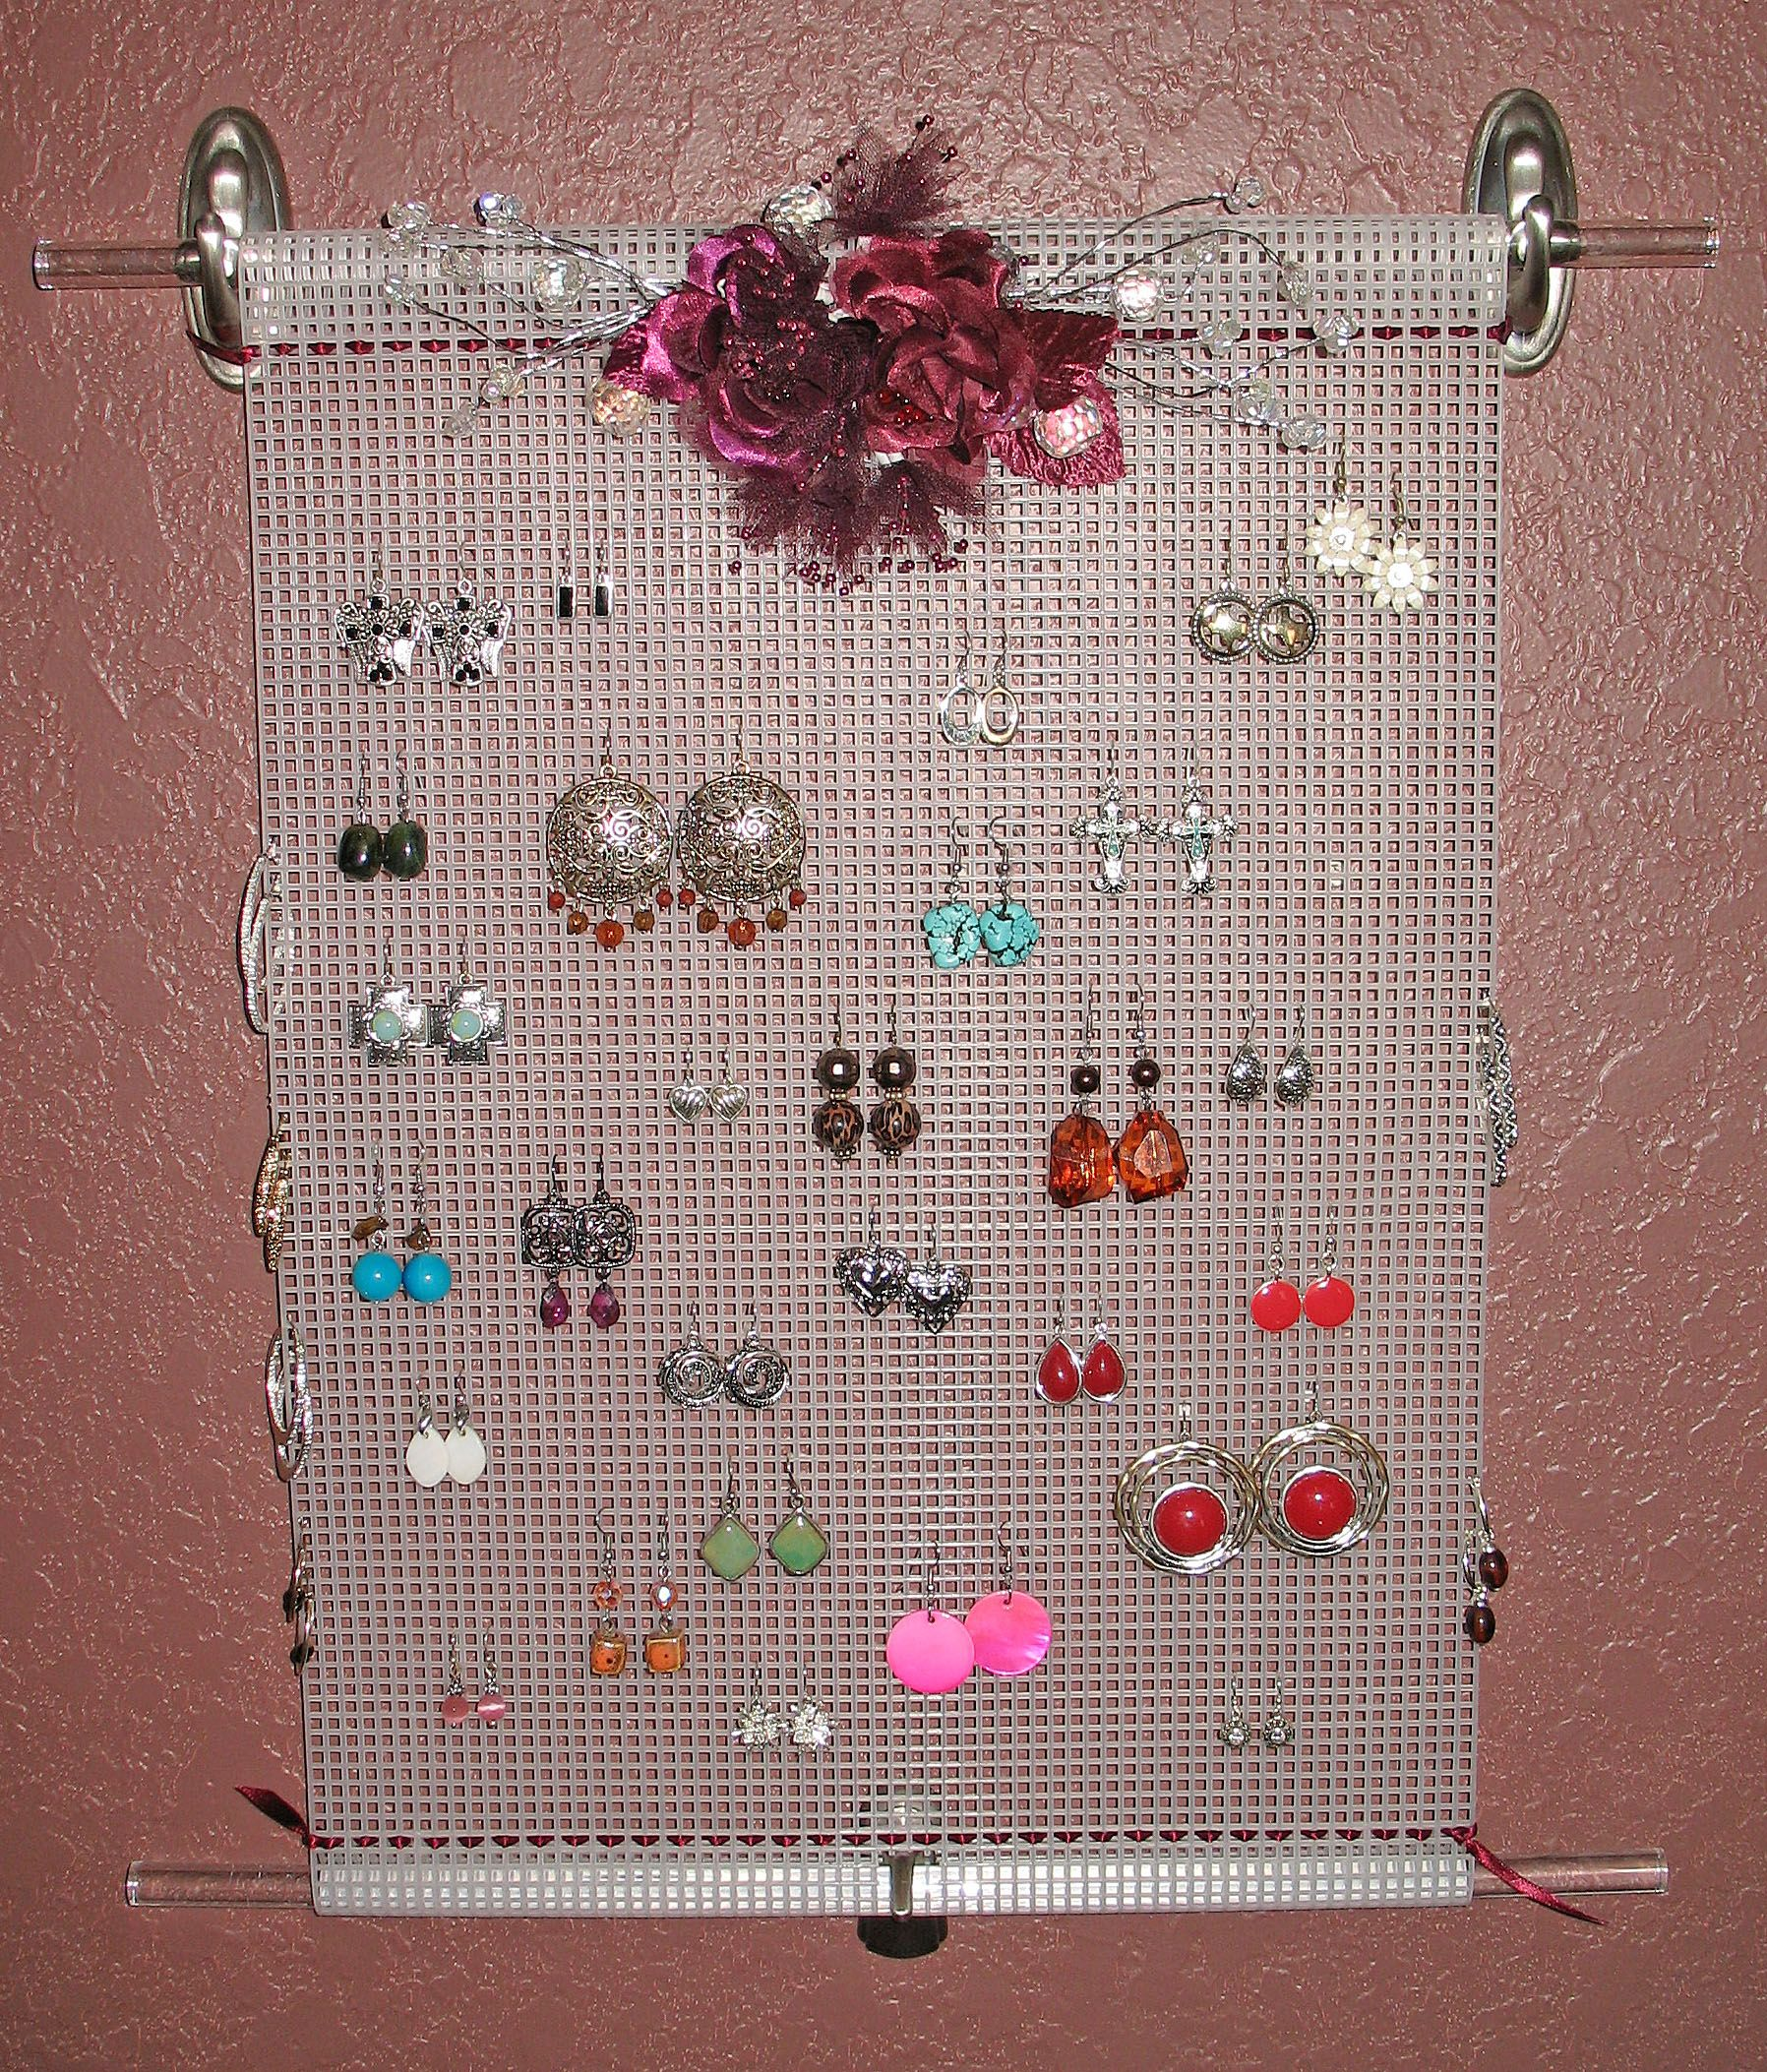 I Ended The Clutter On My Dresser By Making An Earring Holder